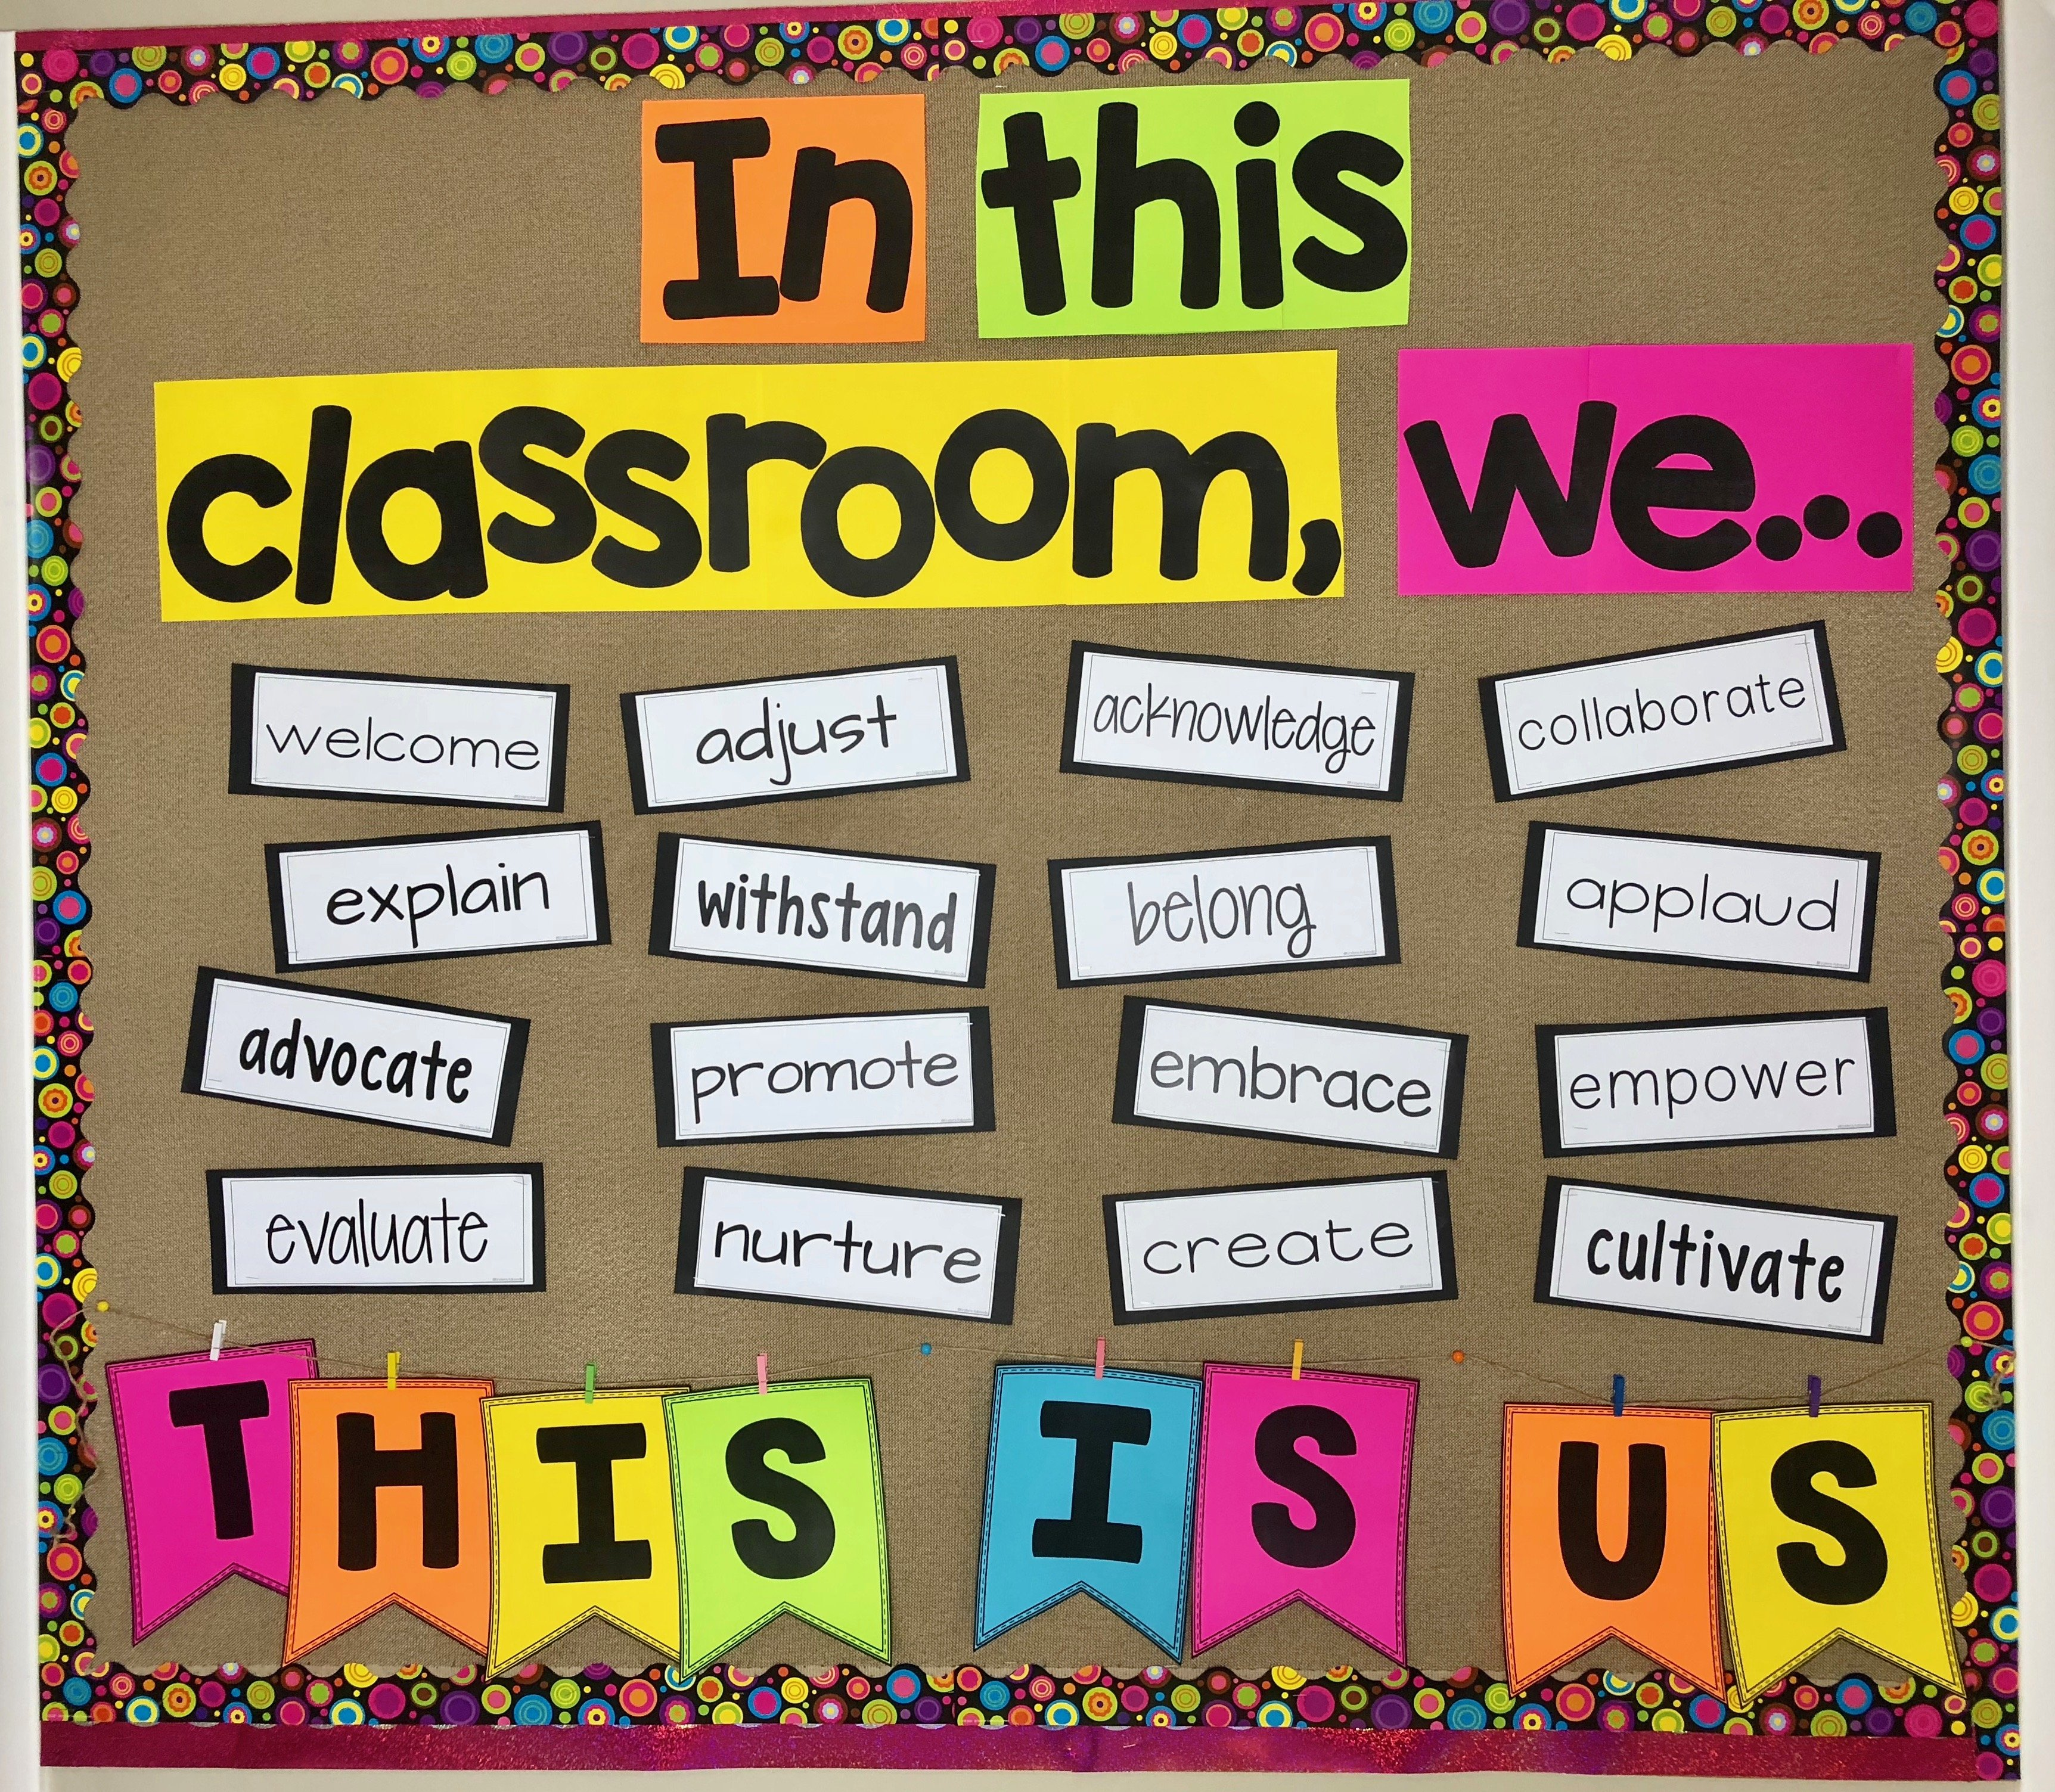 Community Building Activities Using ACTION WORDS - THIS IS US!